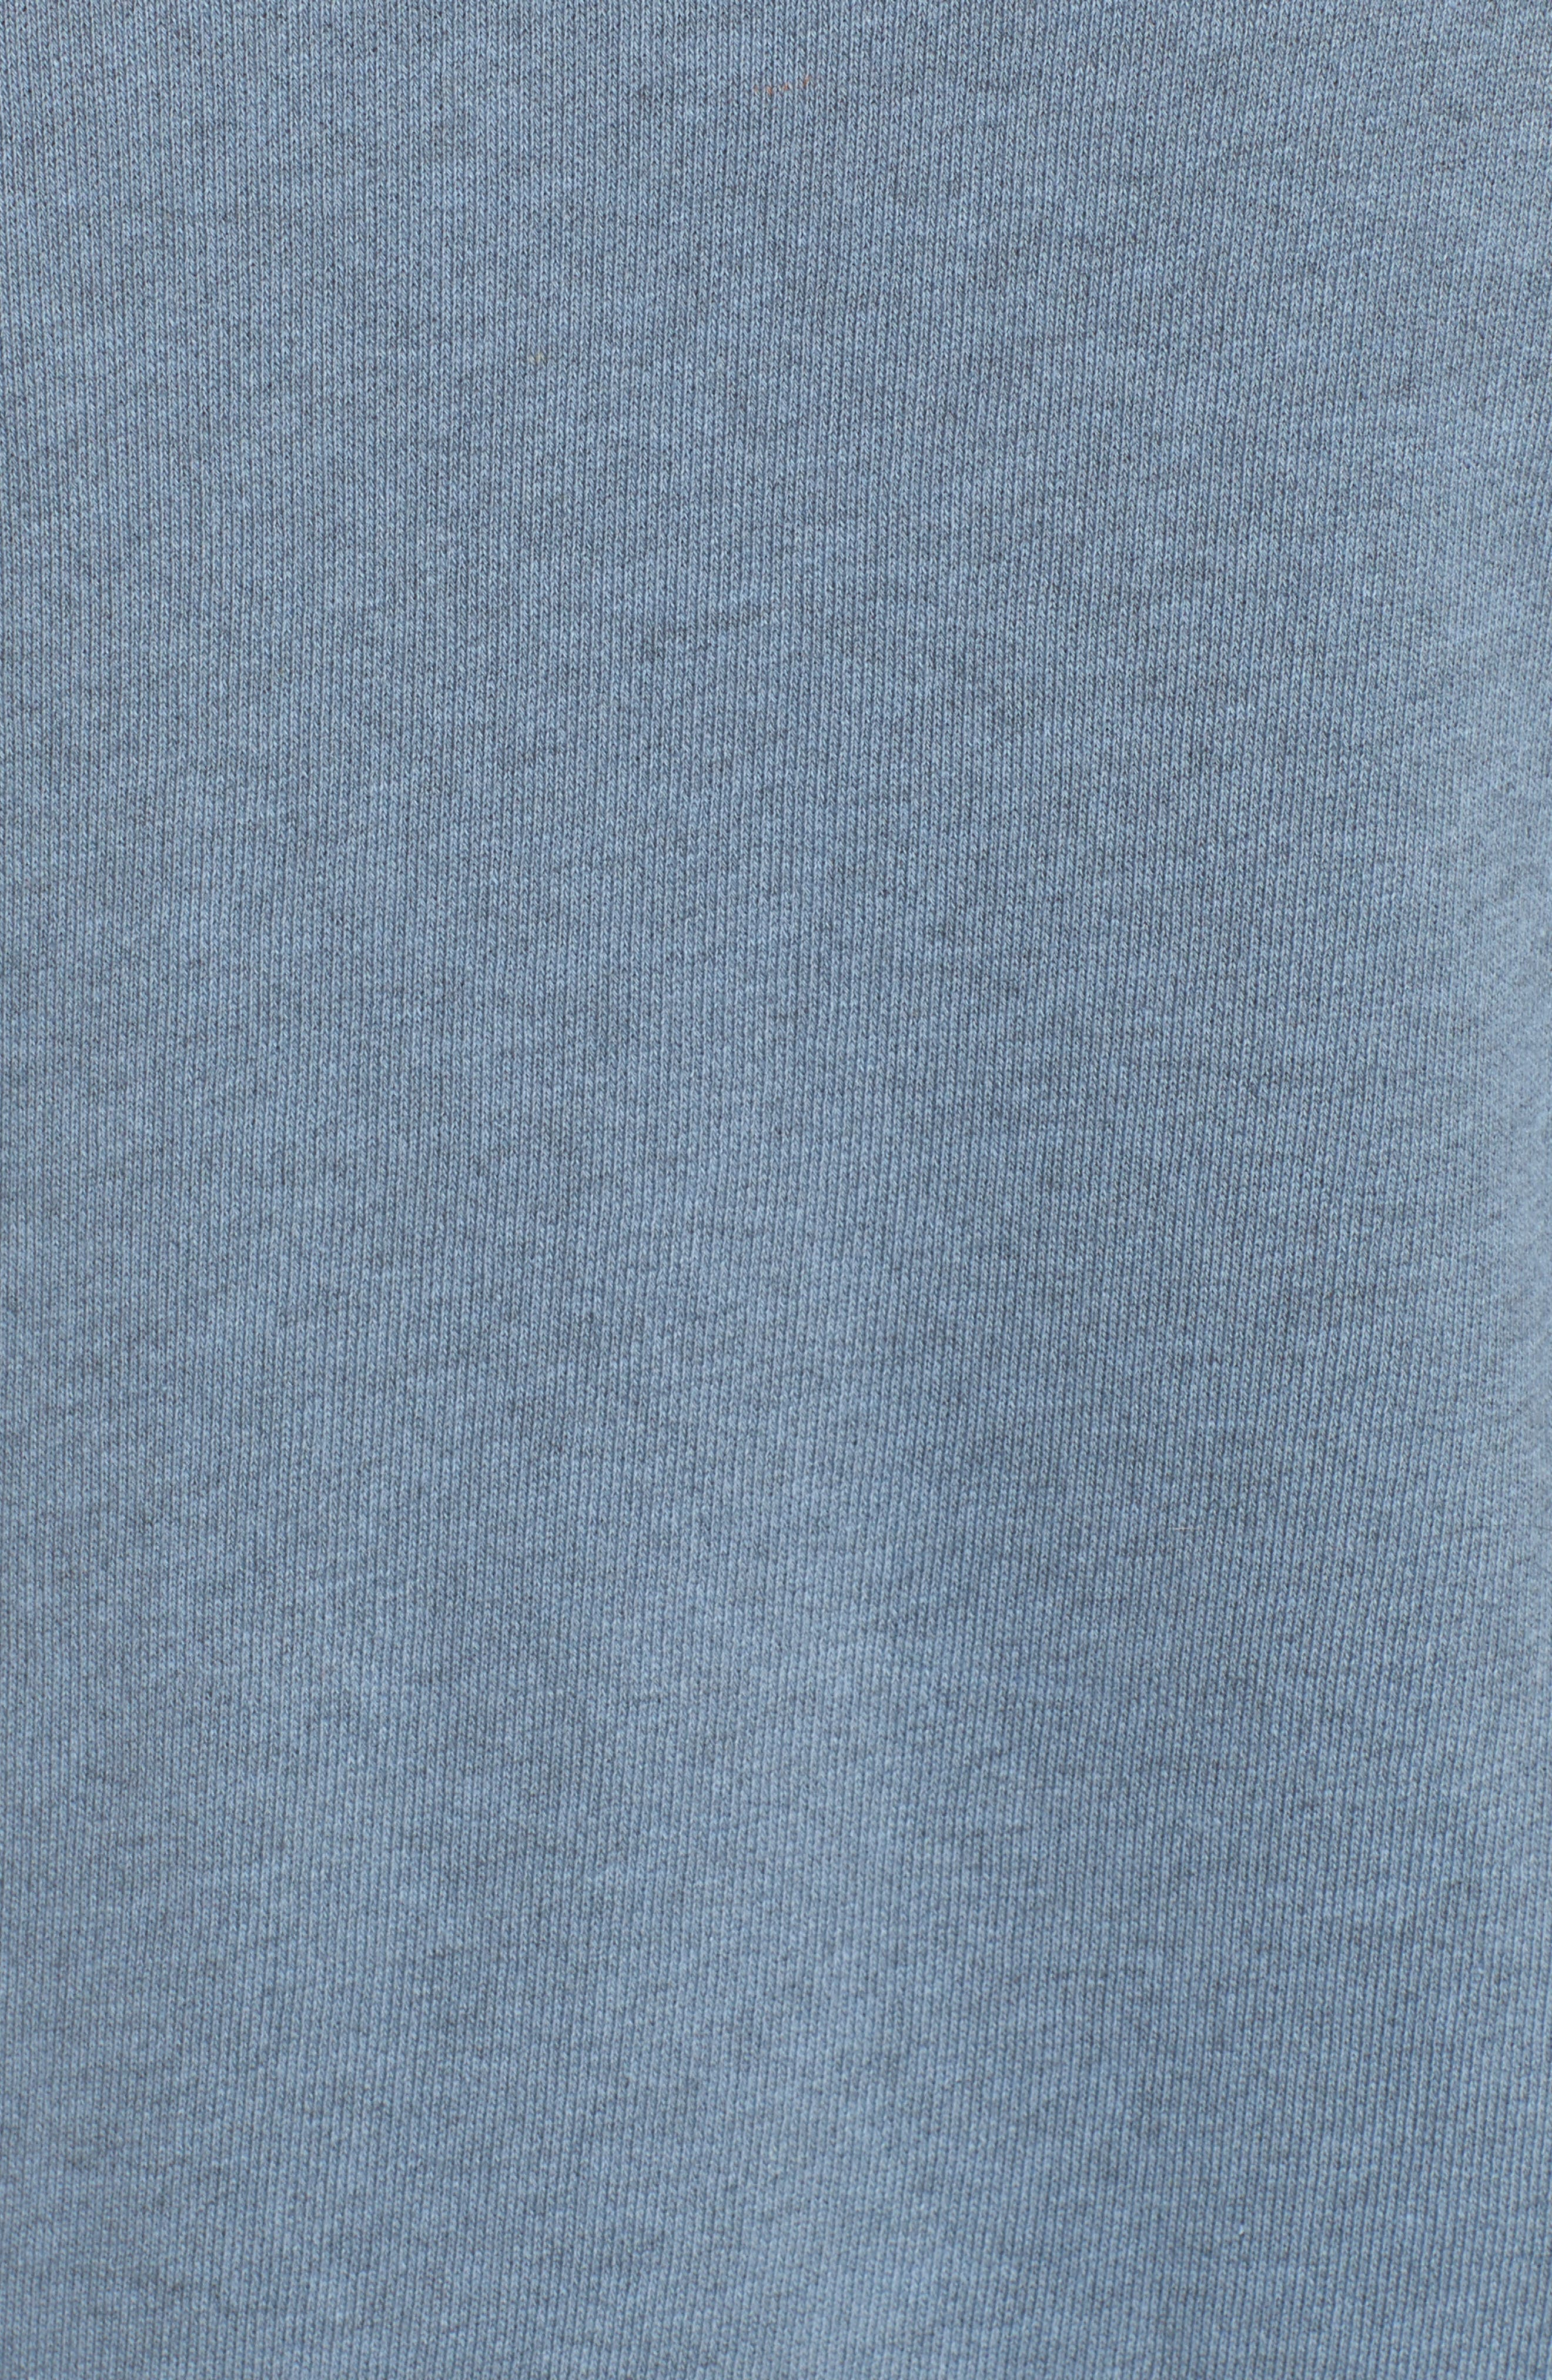 Kyoto Sweatshirt,                             Alternate thumbnail 5, color,                             Blue